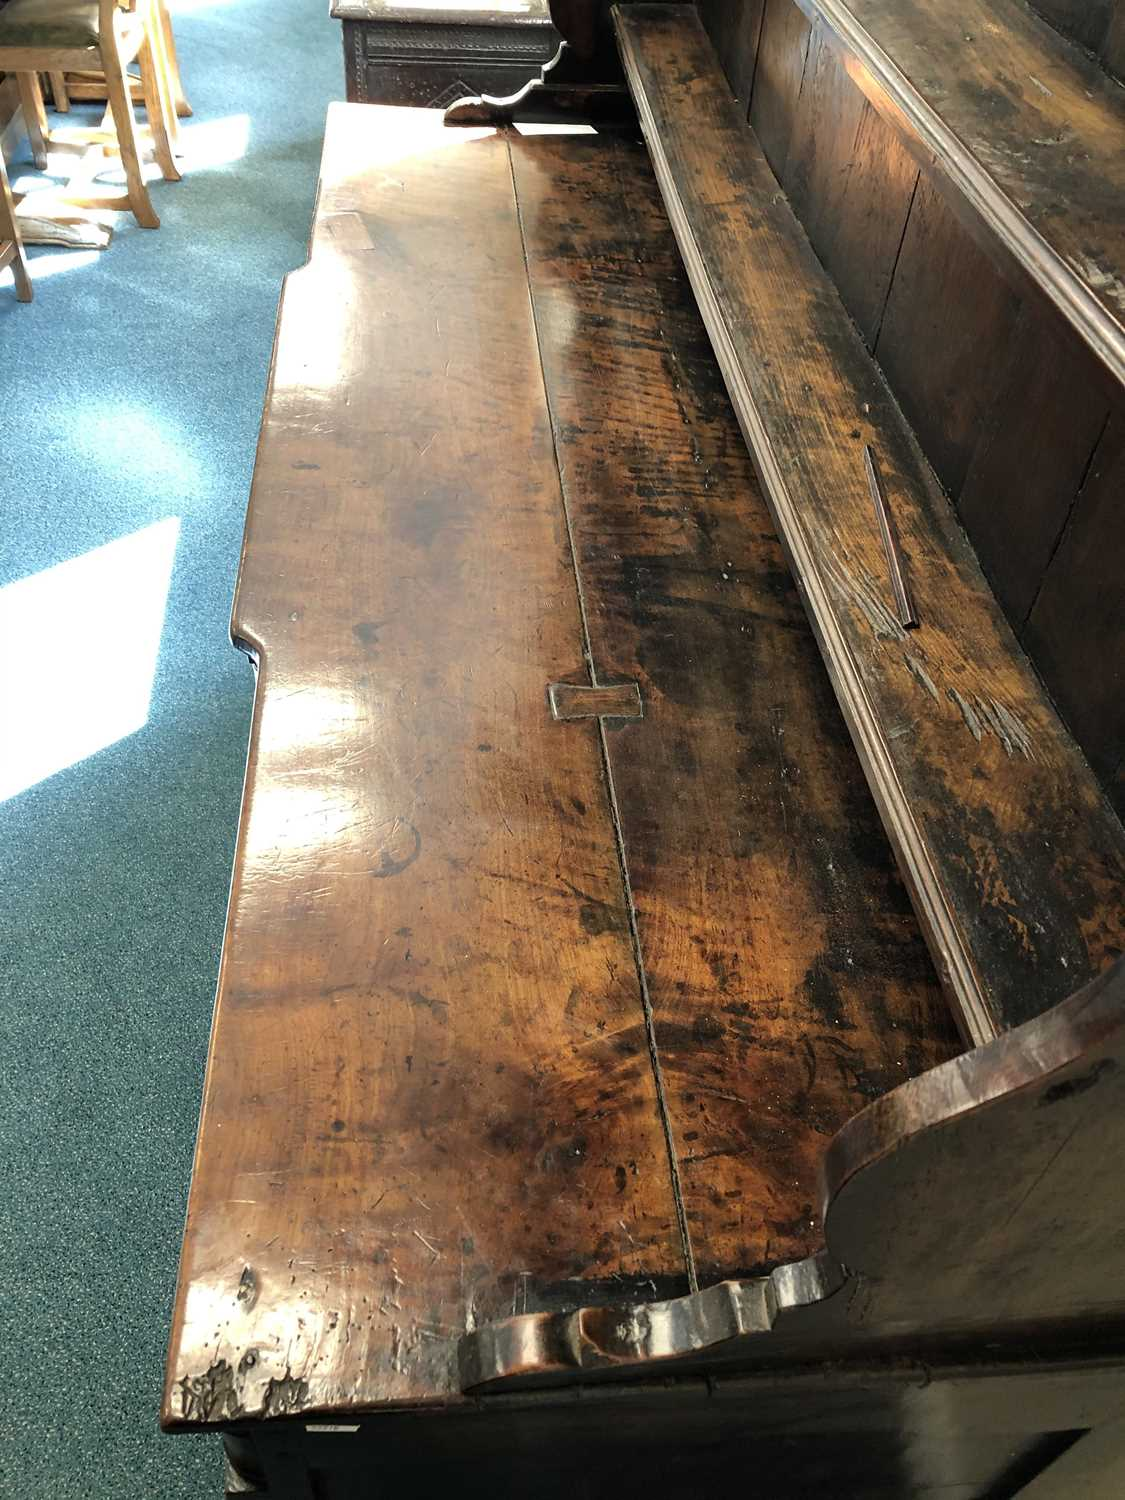 A late 18th century fruitwood or yew wood breakfront dresser, North Wales - Image 3 of 16